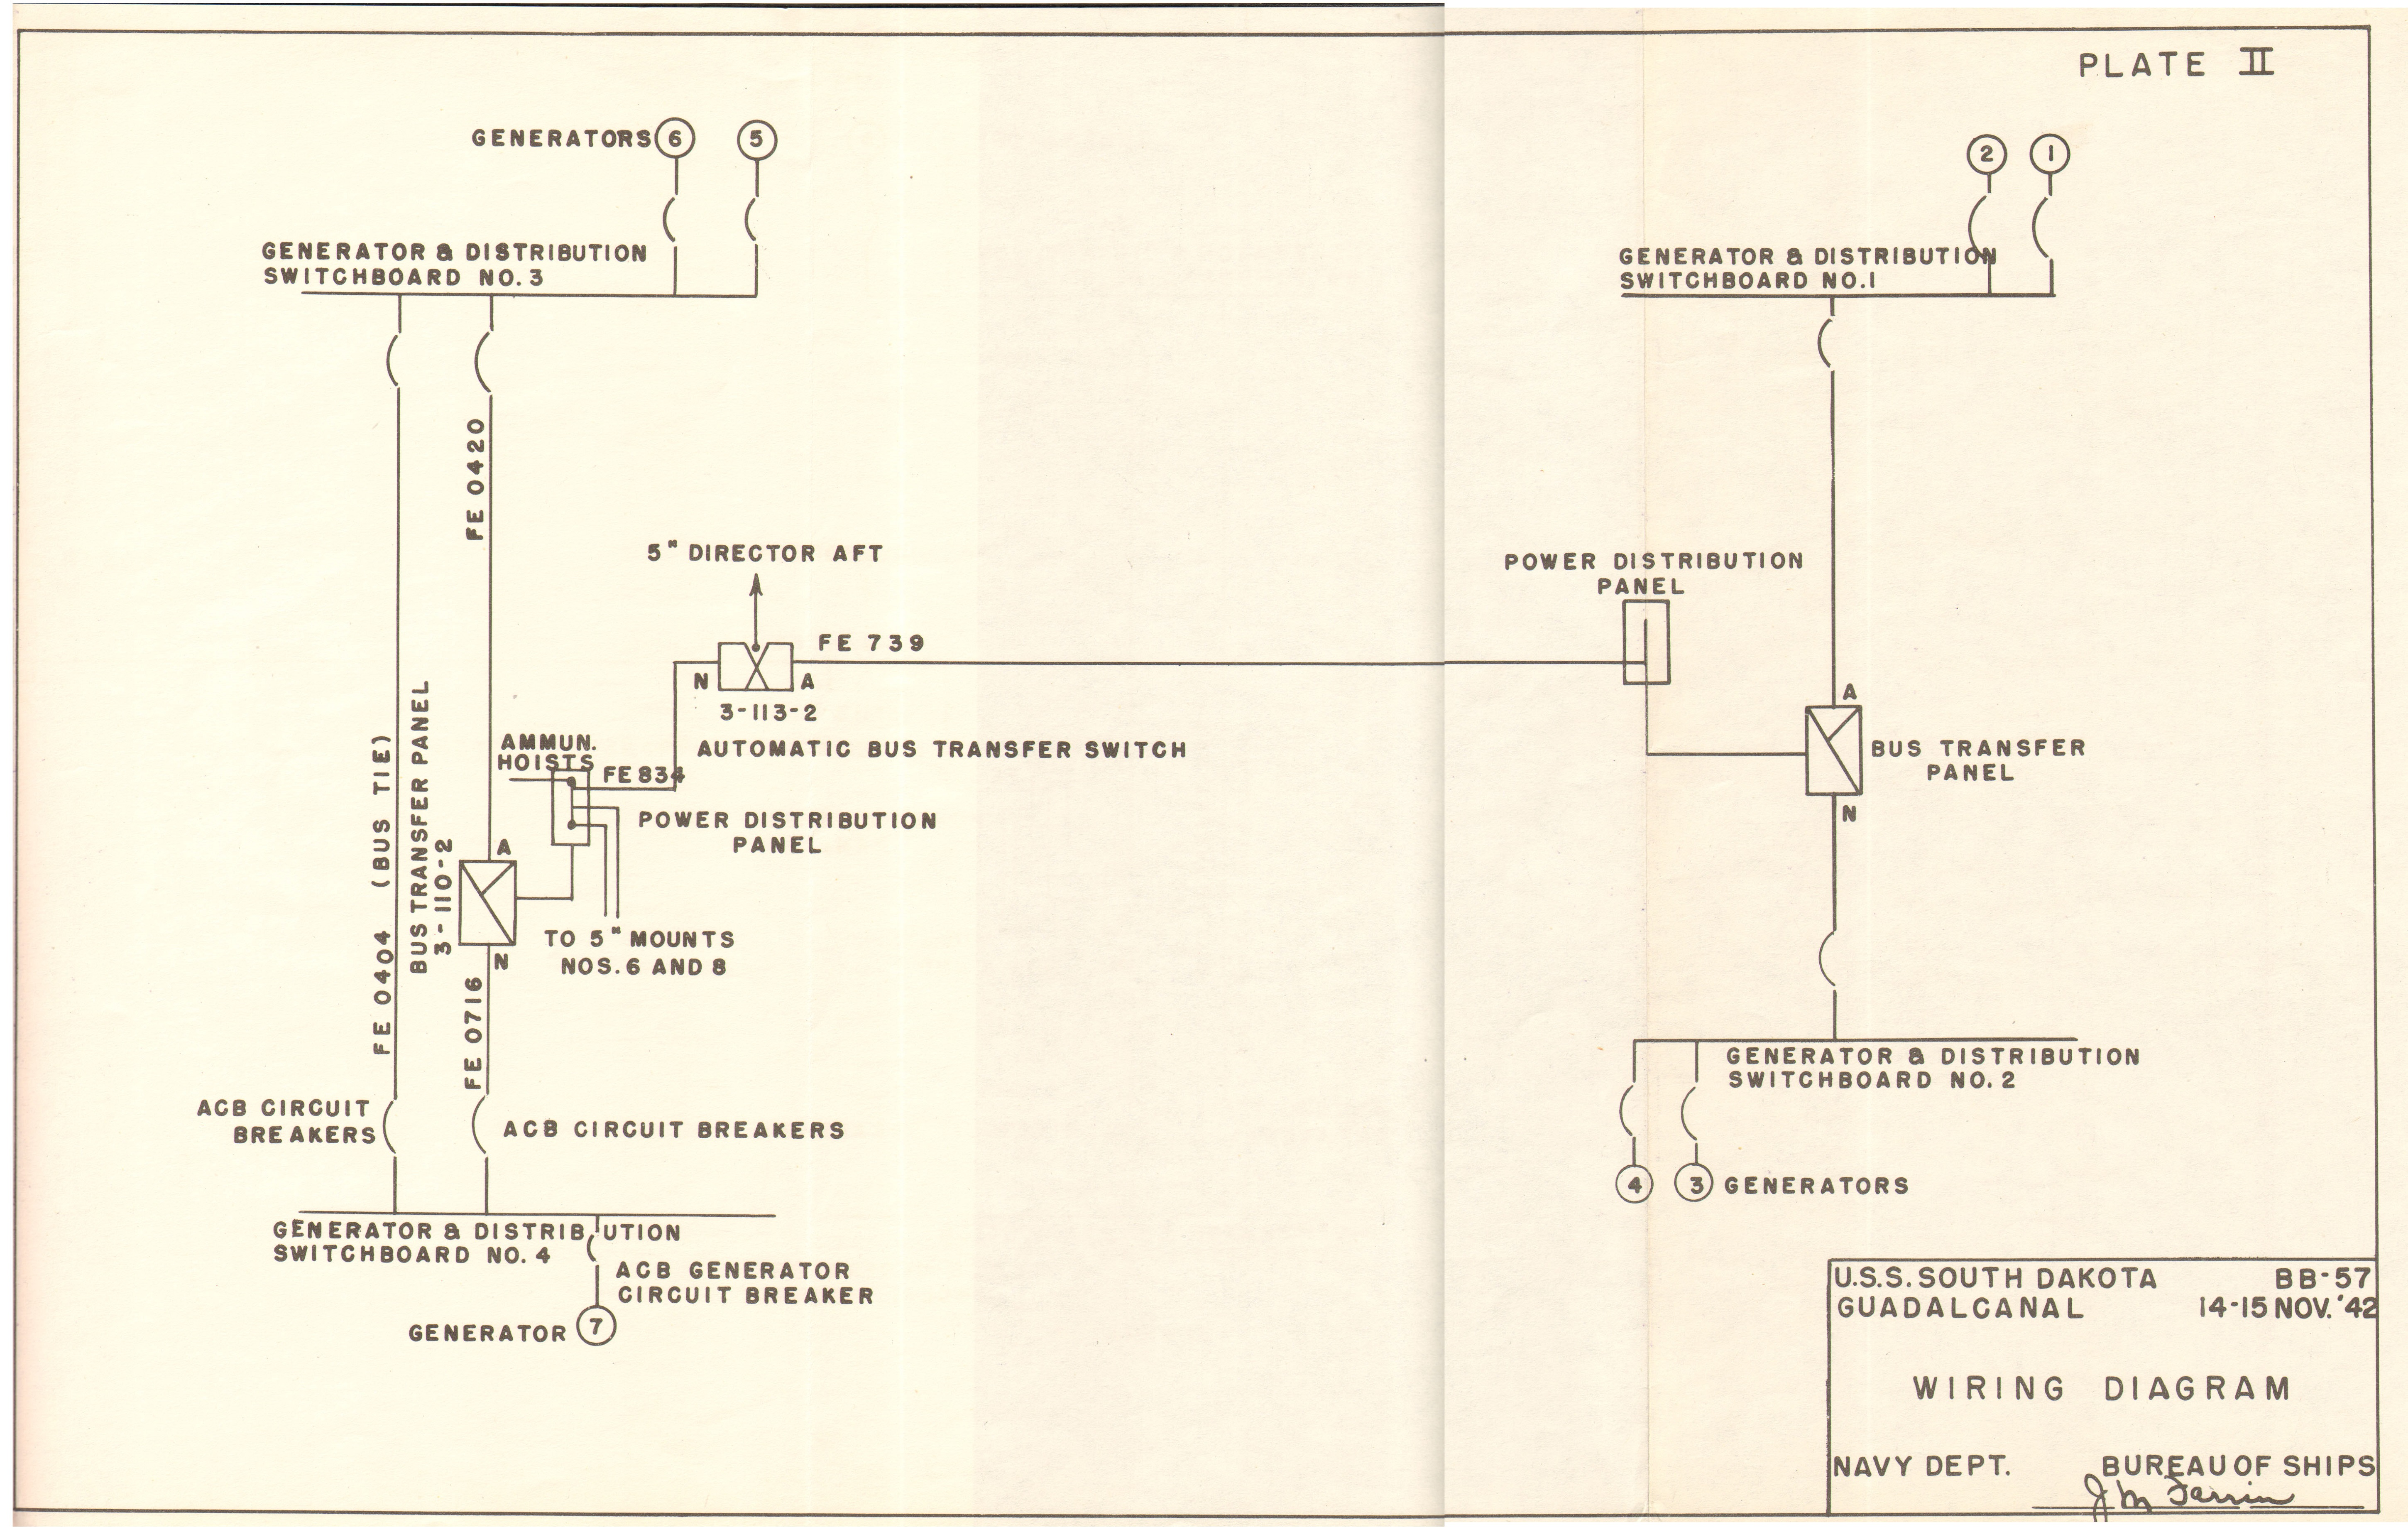 Uss South Dakota Bb57 War Damage Report No 57 Wiring Diagram Air Circuit Breaker Click Here For A Larger Version Of This Plate